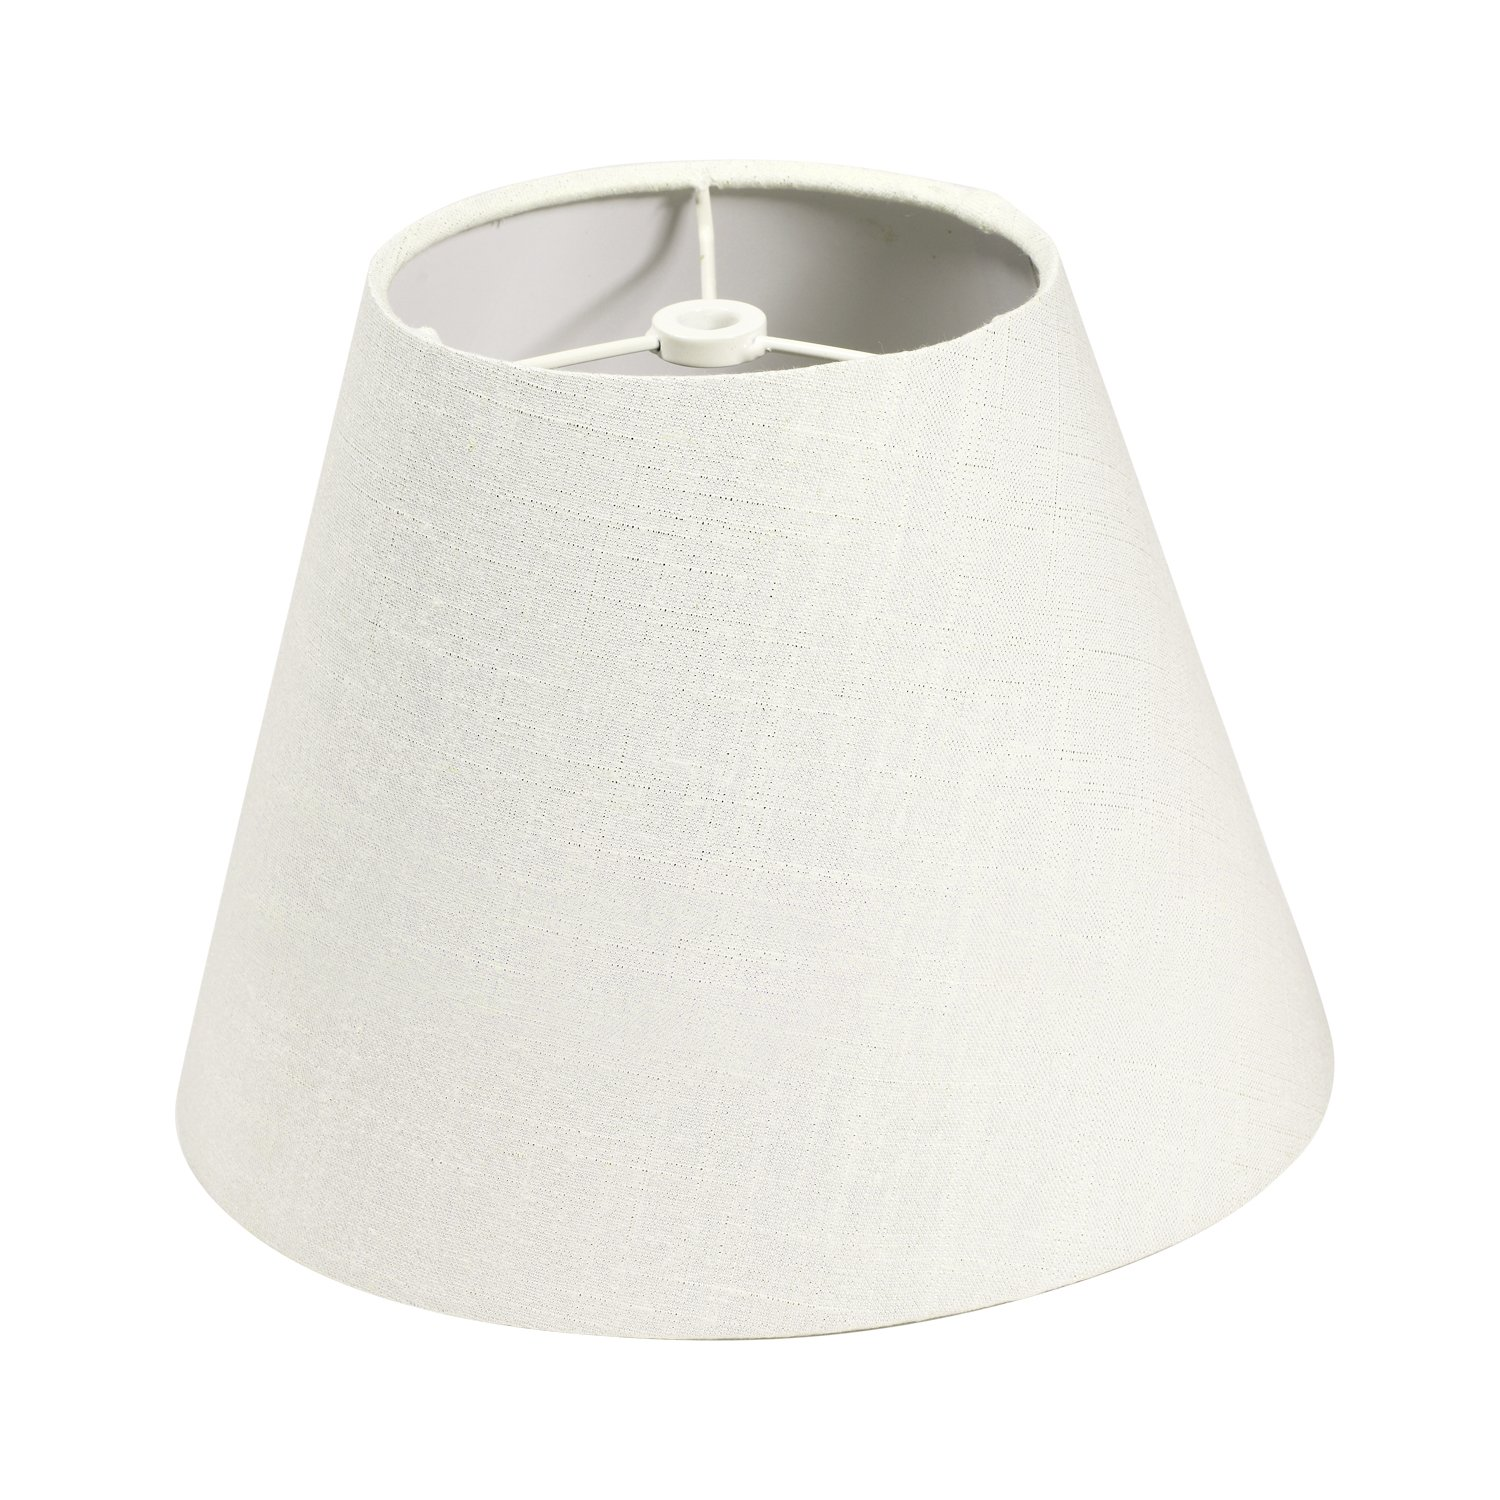 Lamp shades amazon lighting ceiling fans lighting lamp shade aloadofball Choice Image